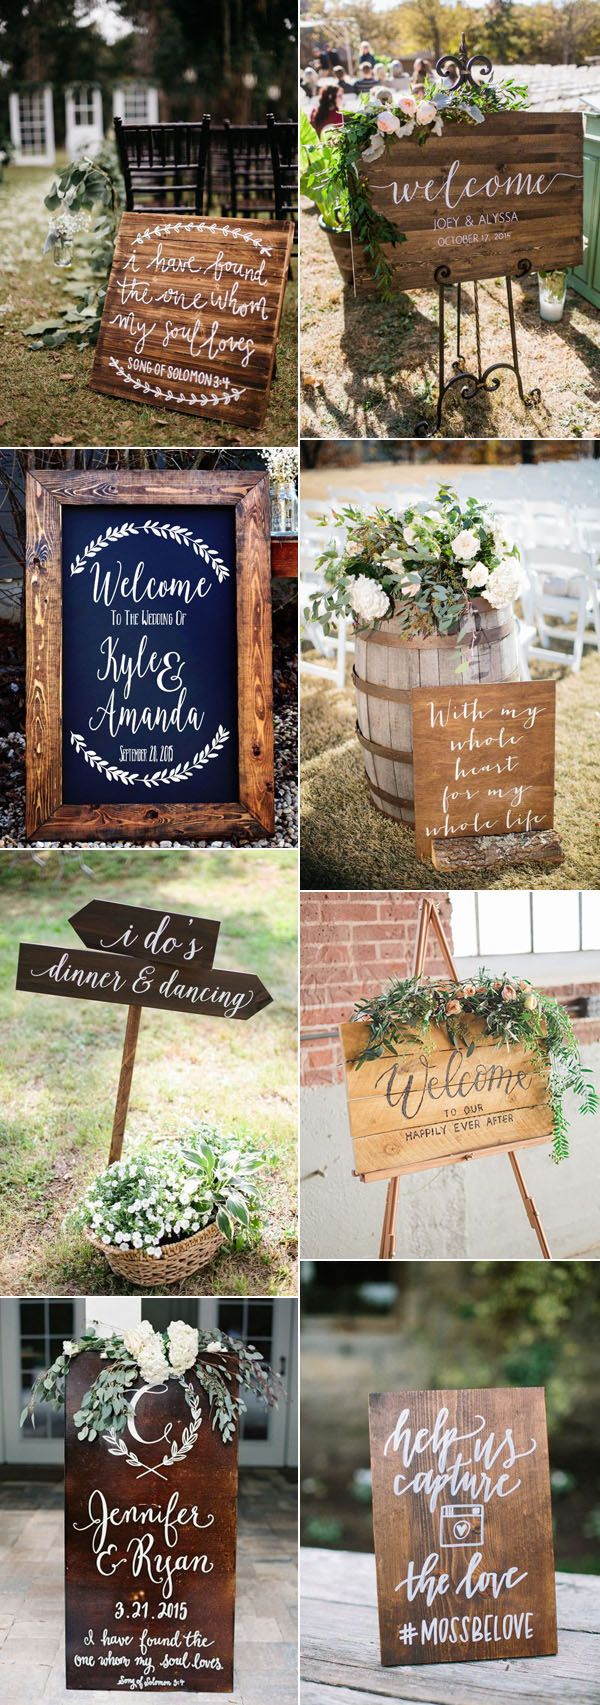 Wedding decorations country   Rustic Wedding Decoration Ideas to Inspire Your Big Day  Wooden